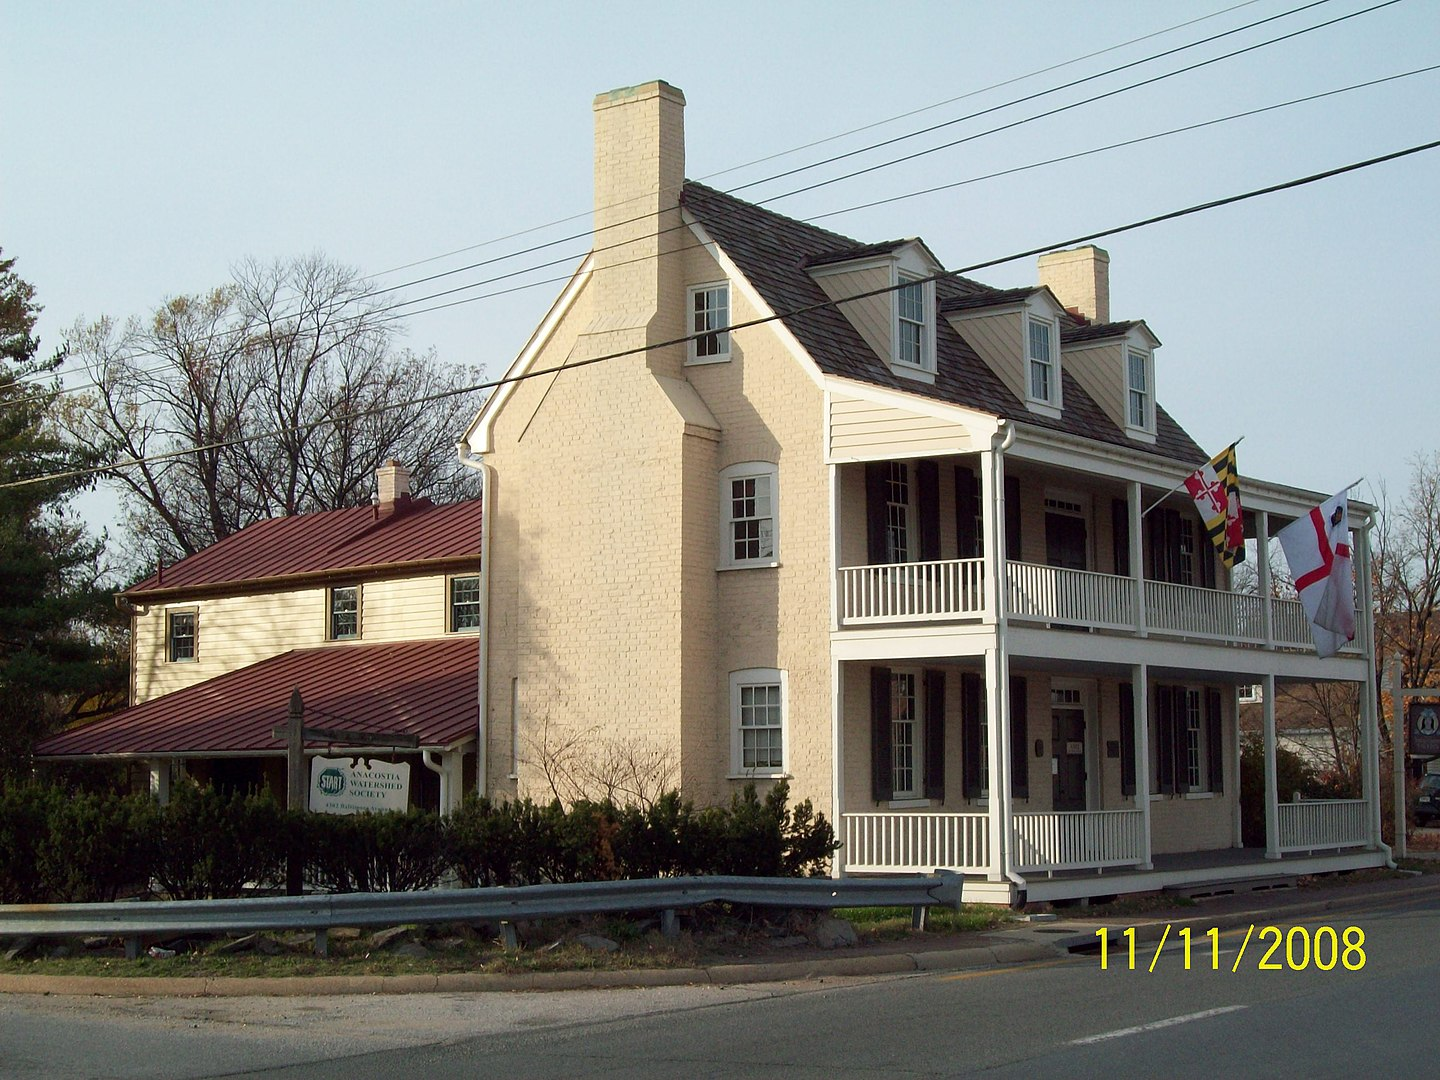 George Washington House (The Indian Queen Tavern)